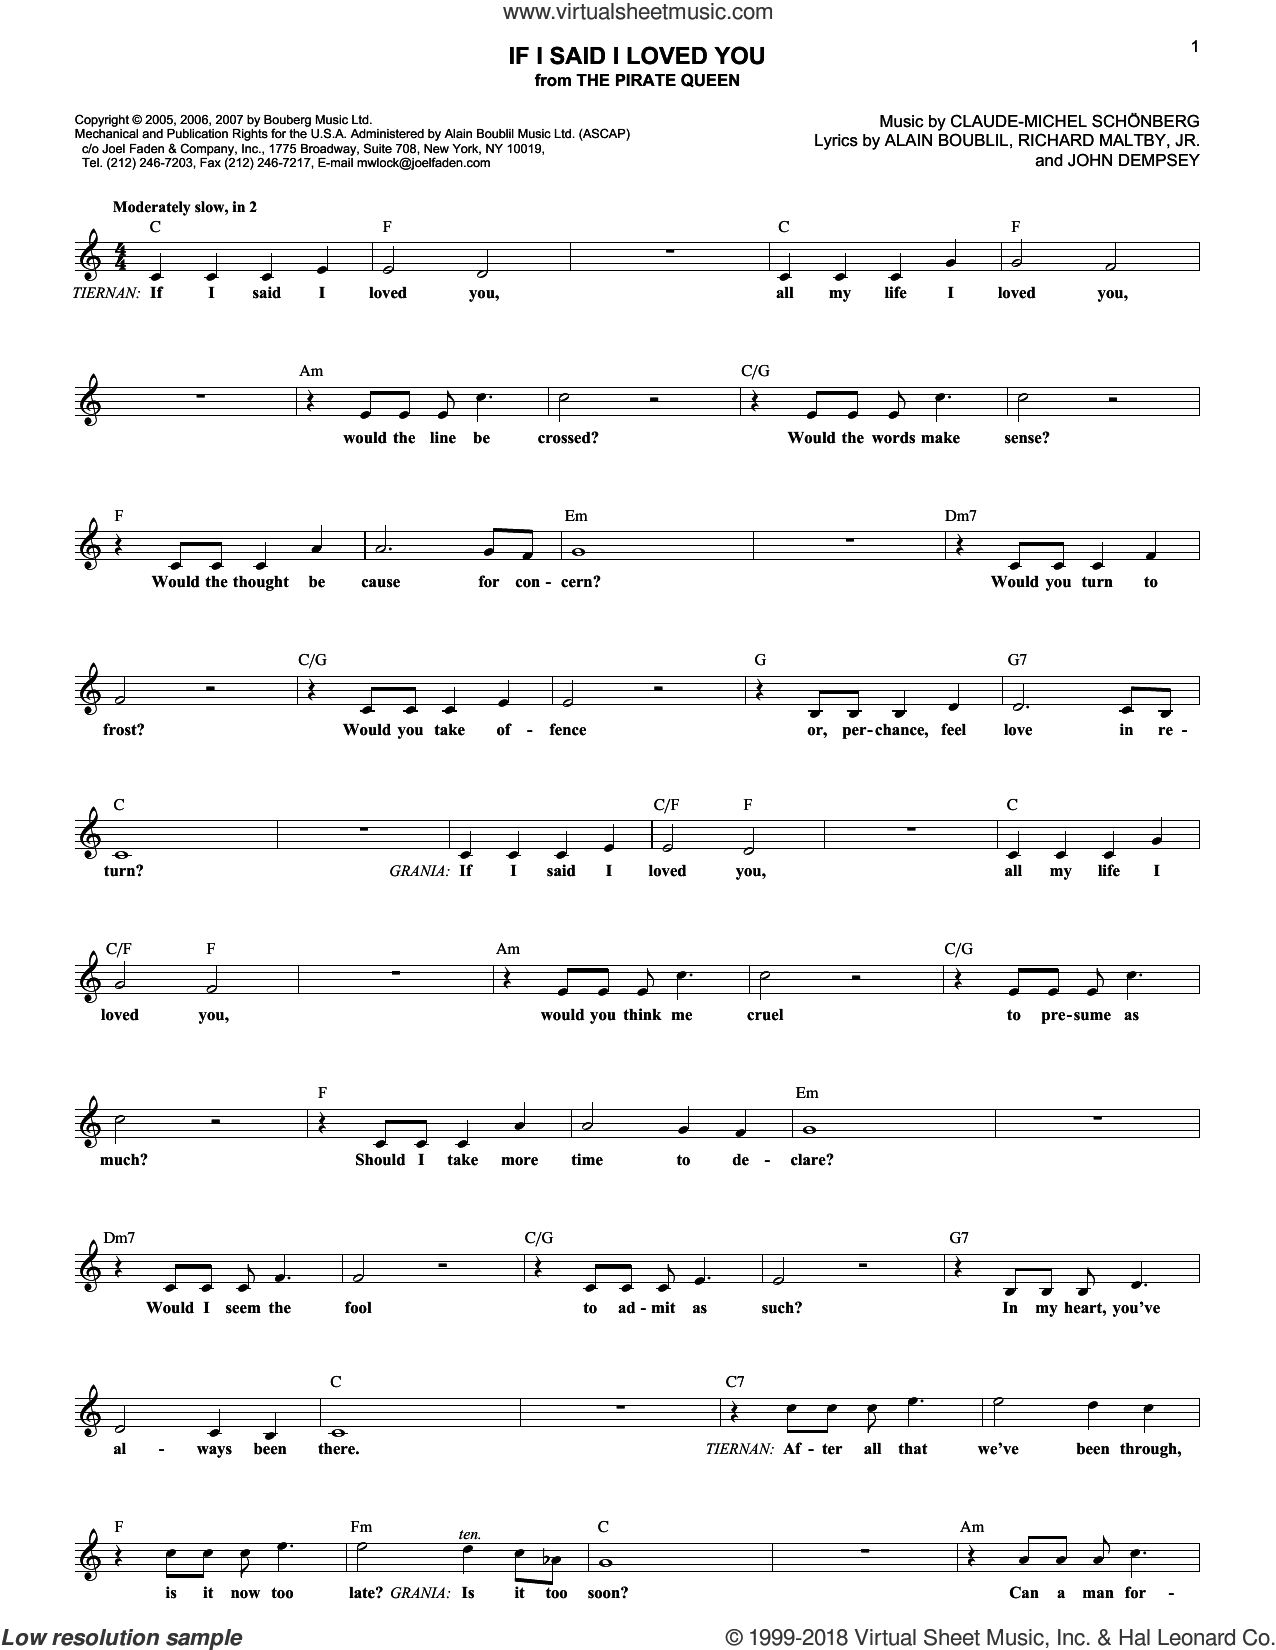 If I Said I Loved You sheet music for voice and other instruments (fake book) by Claude-Michel Schonberg, The Pirate Queen (Musical), Alain Boublil, John Dempsey and Richard Maltby, Jr., intermediate. Score Image Preview.